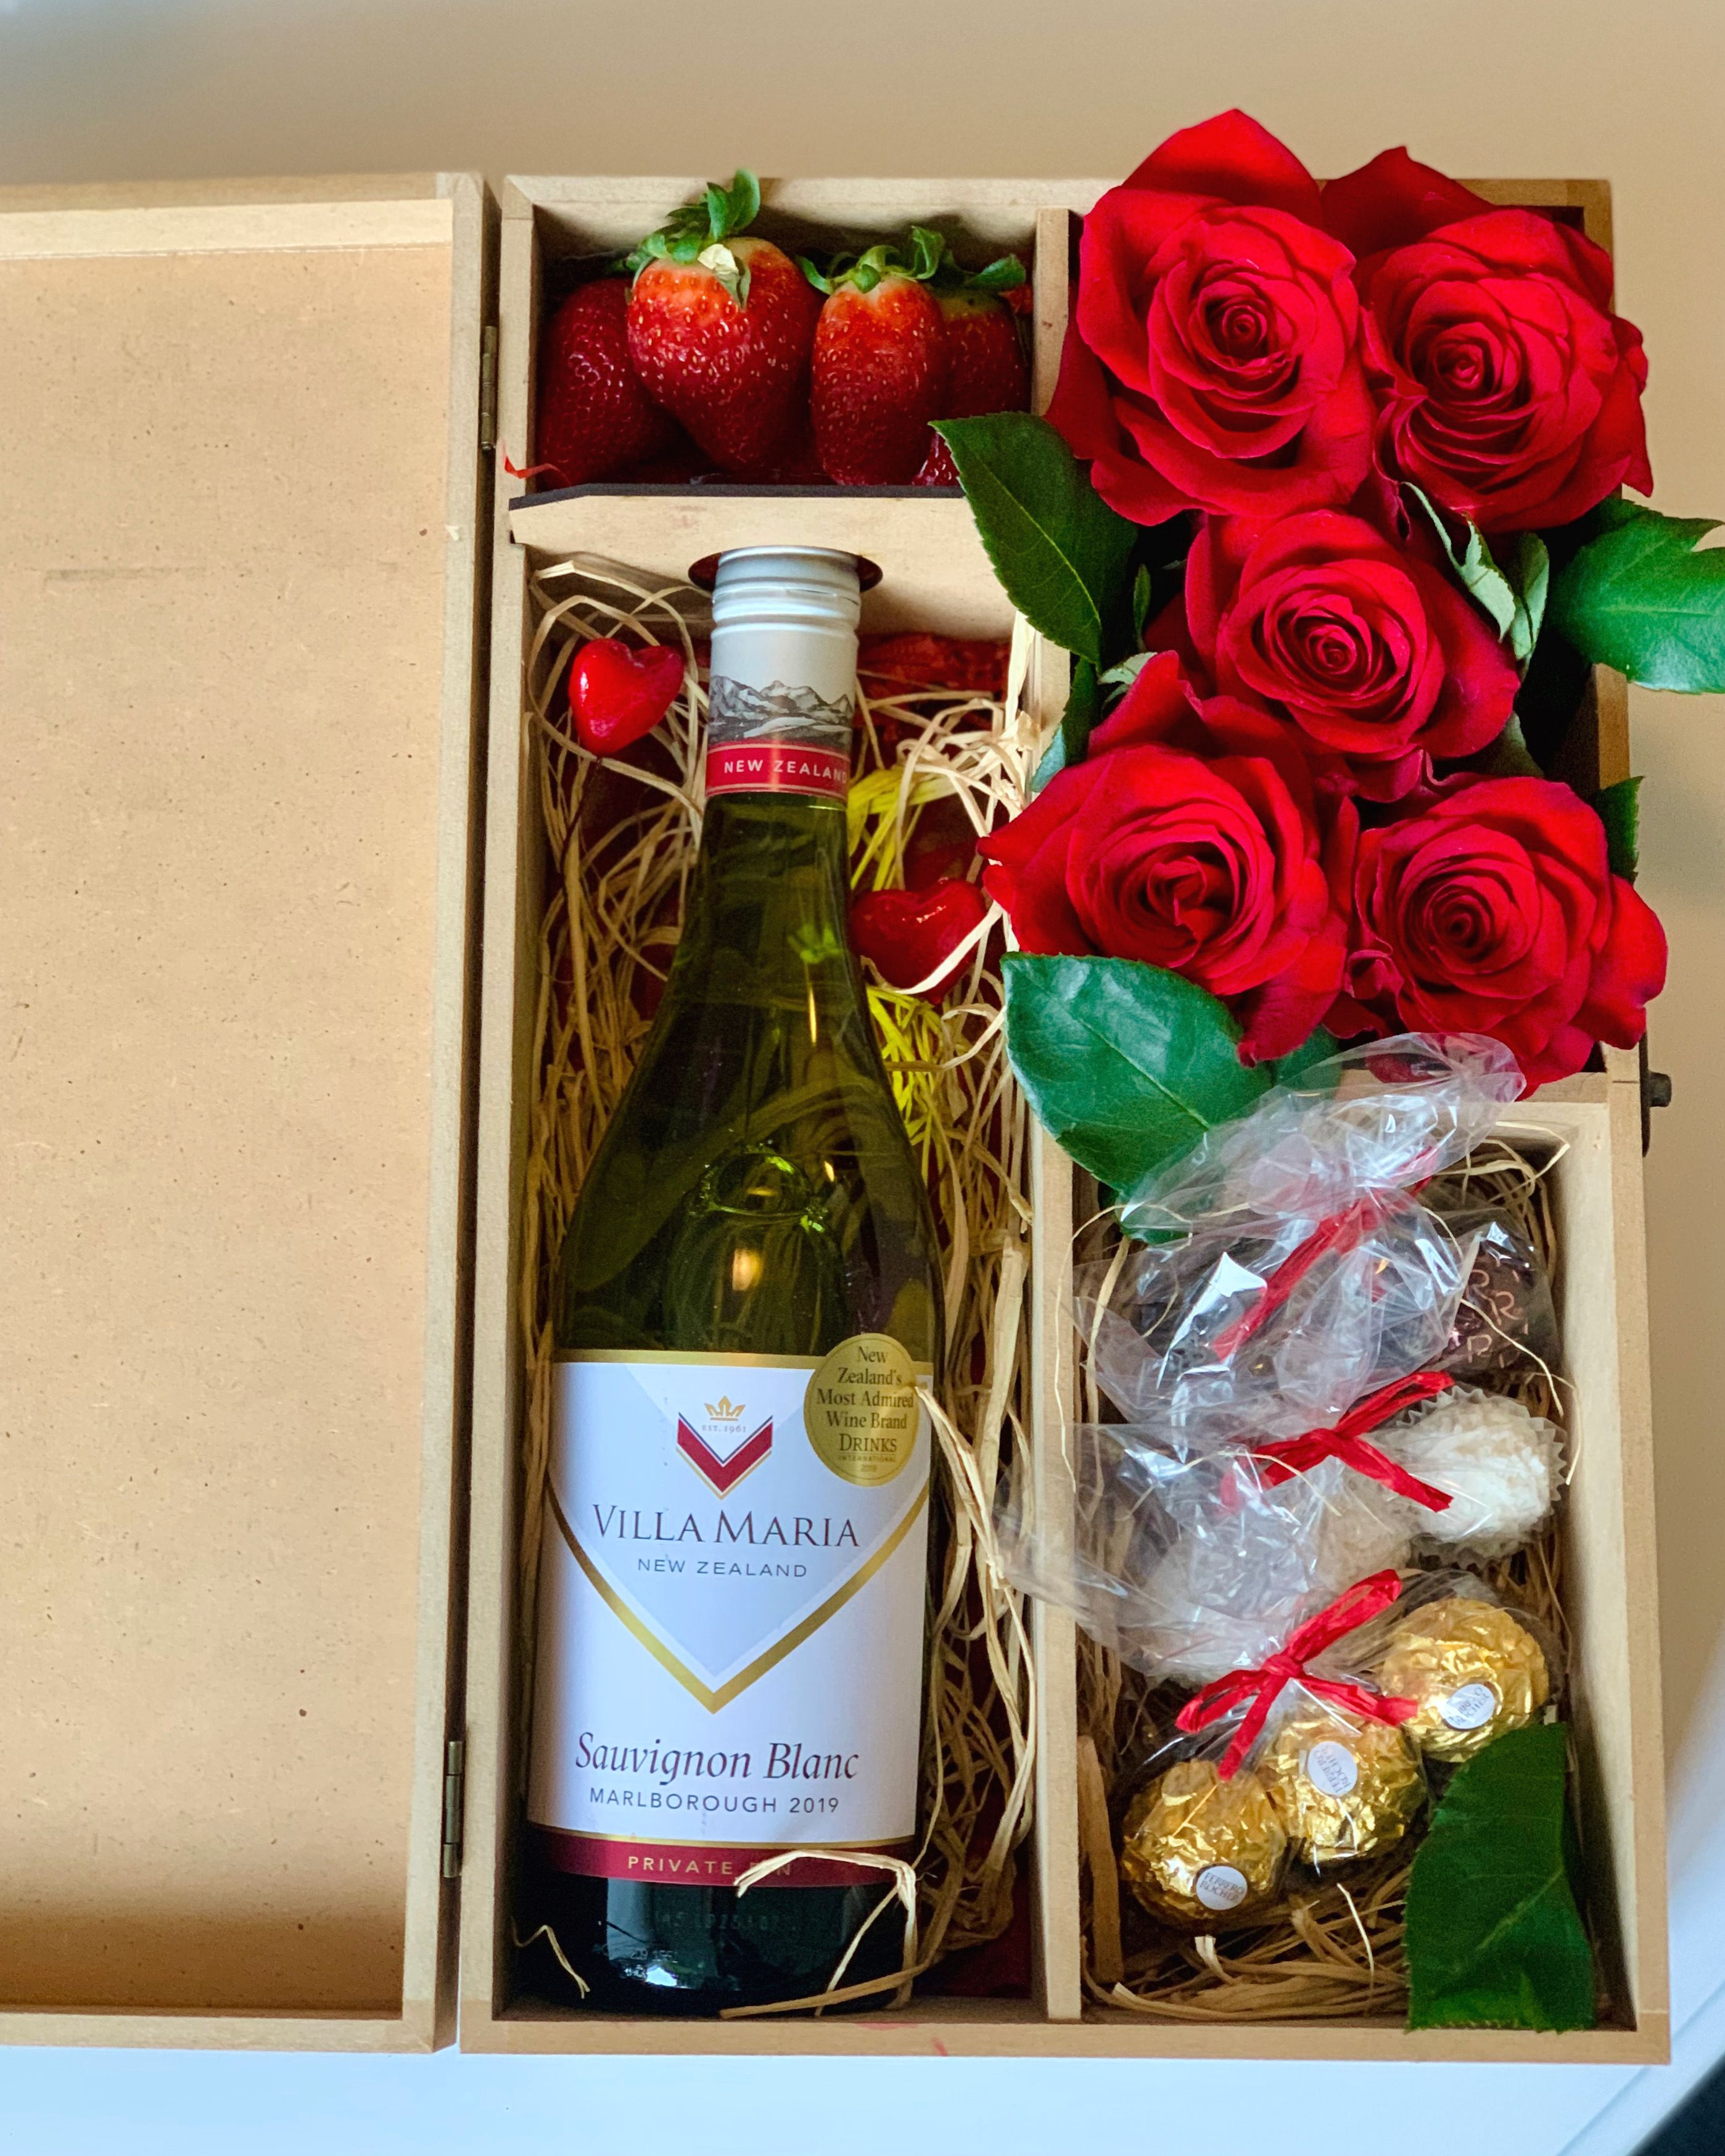 Bottle Of Wine And Roses Gift Box In 2020 Wine Bottle Wine Box Rose Gift